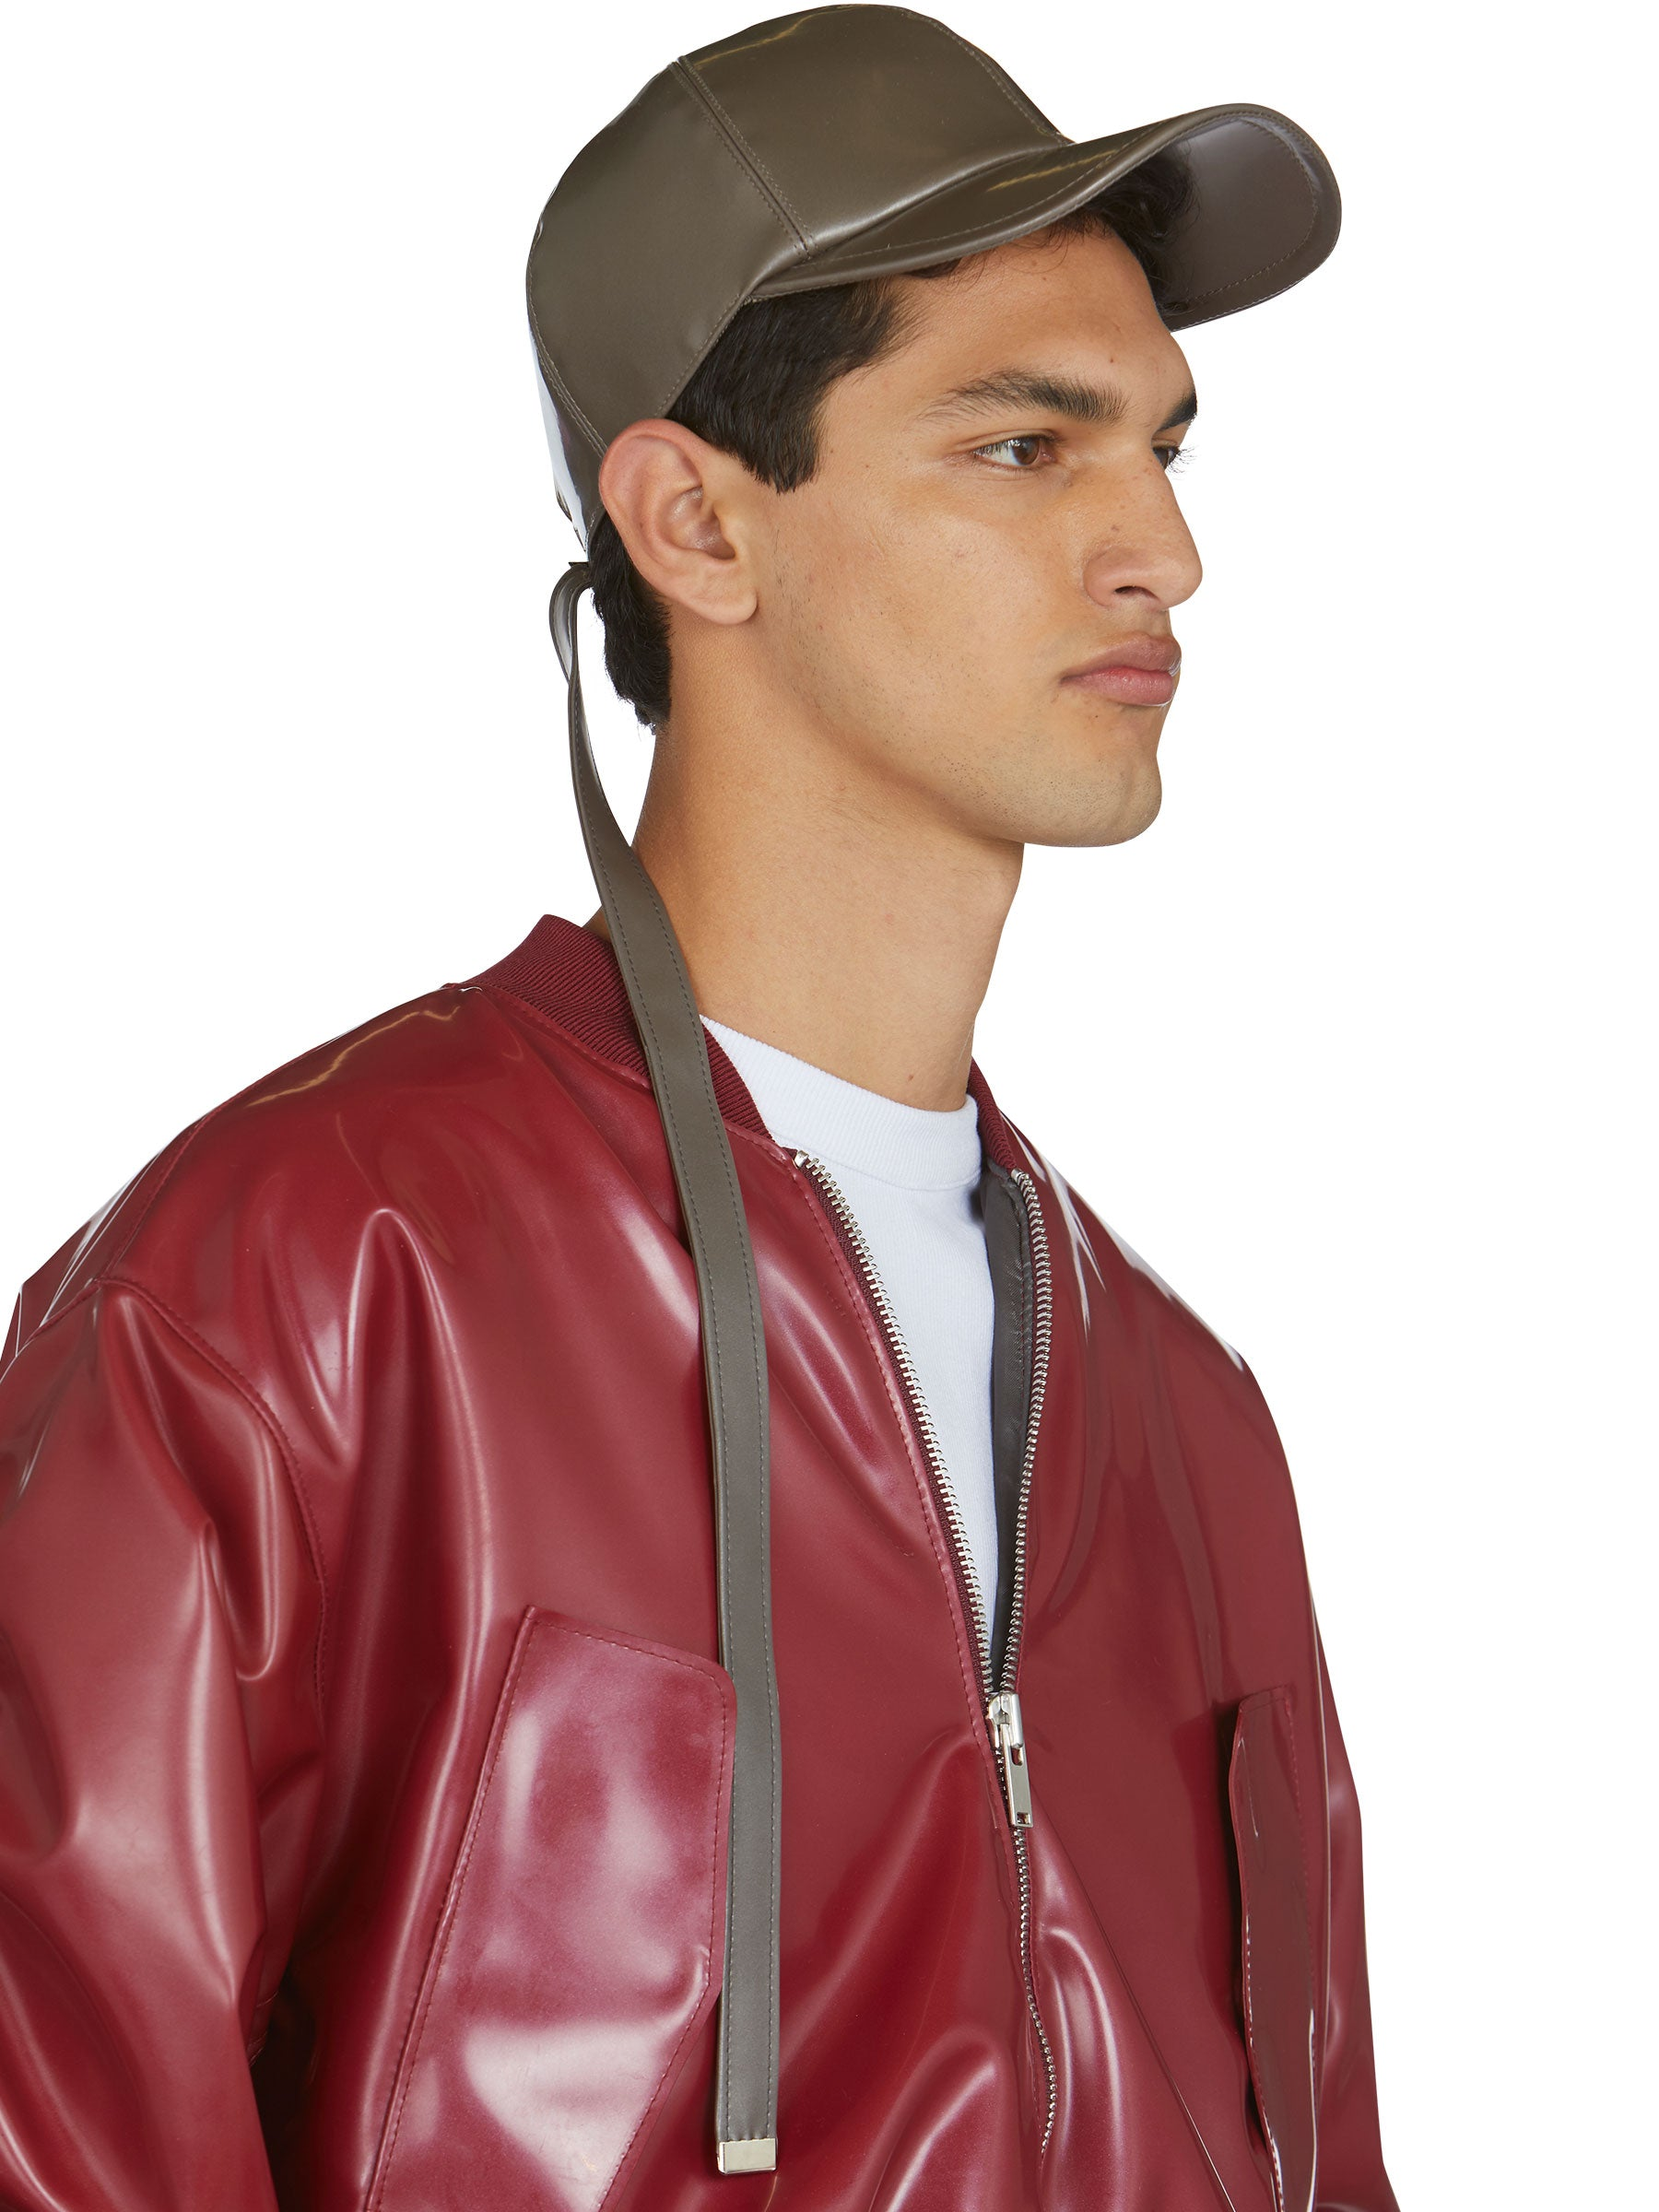 odd92 Shop Arthur Avellano Spring/Summer 2019 Menswear Womenswear Latex Cap - 2